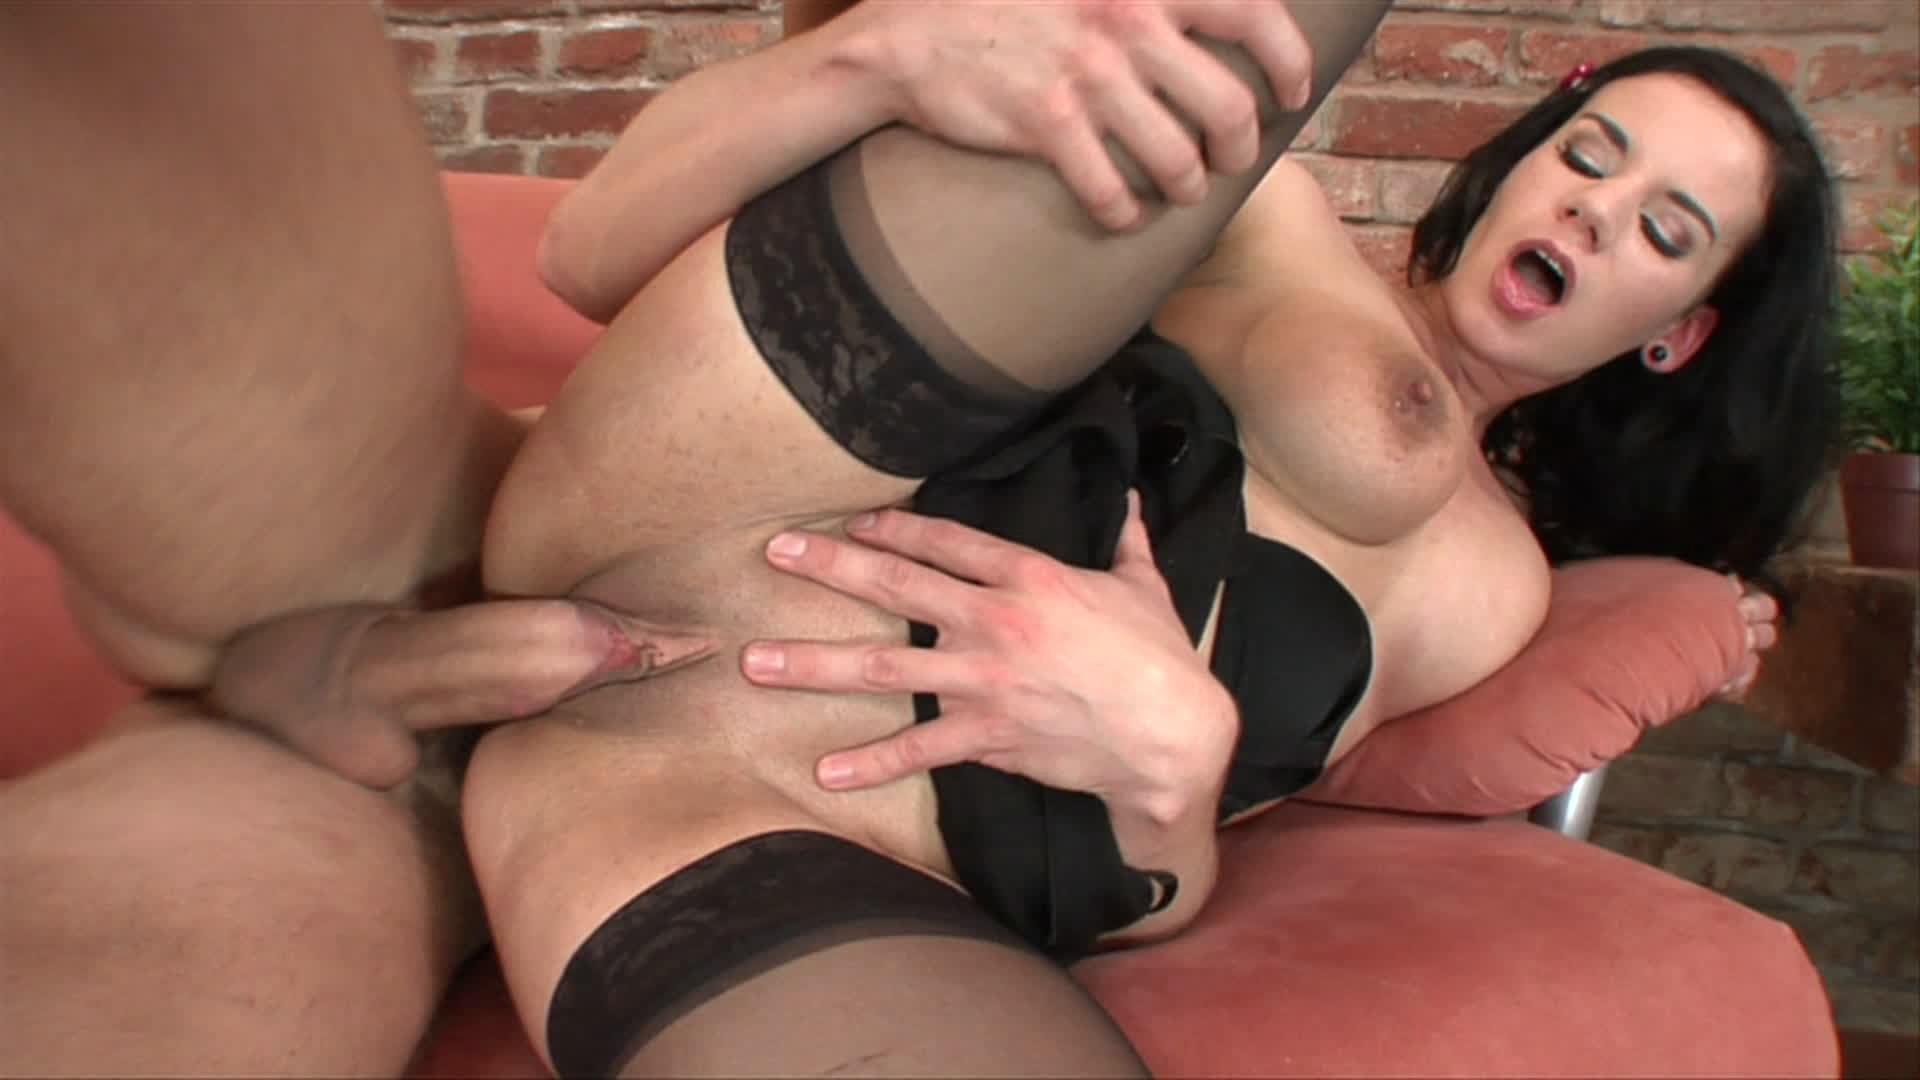 His First MILF 3 xvideos